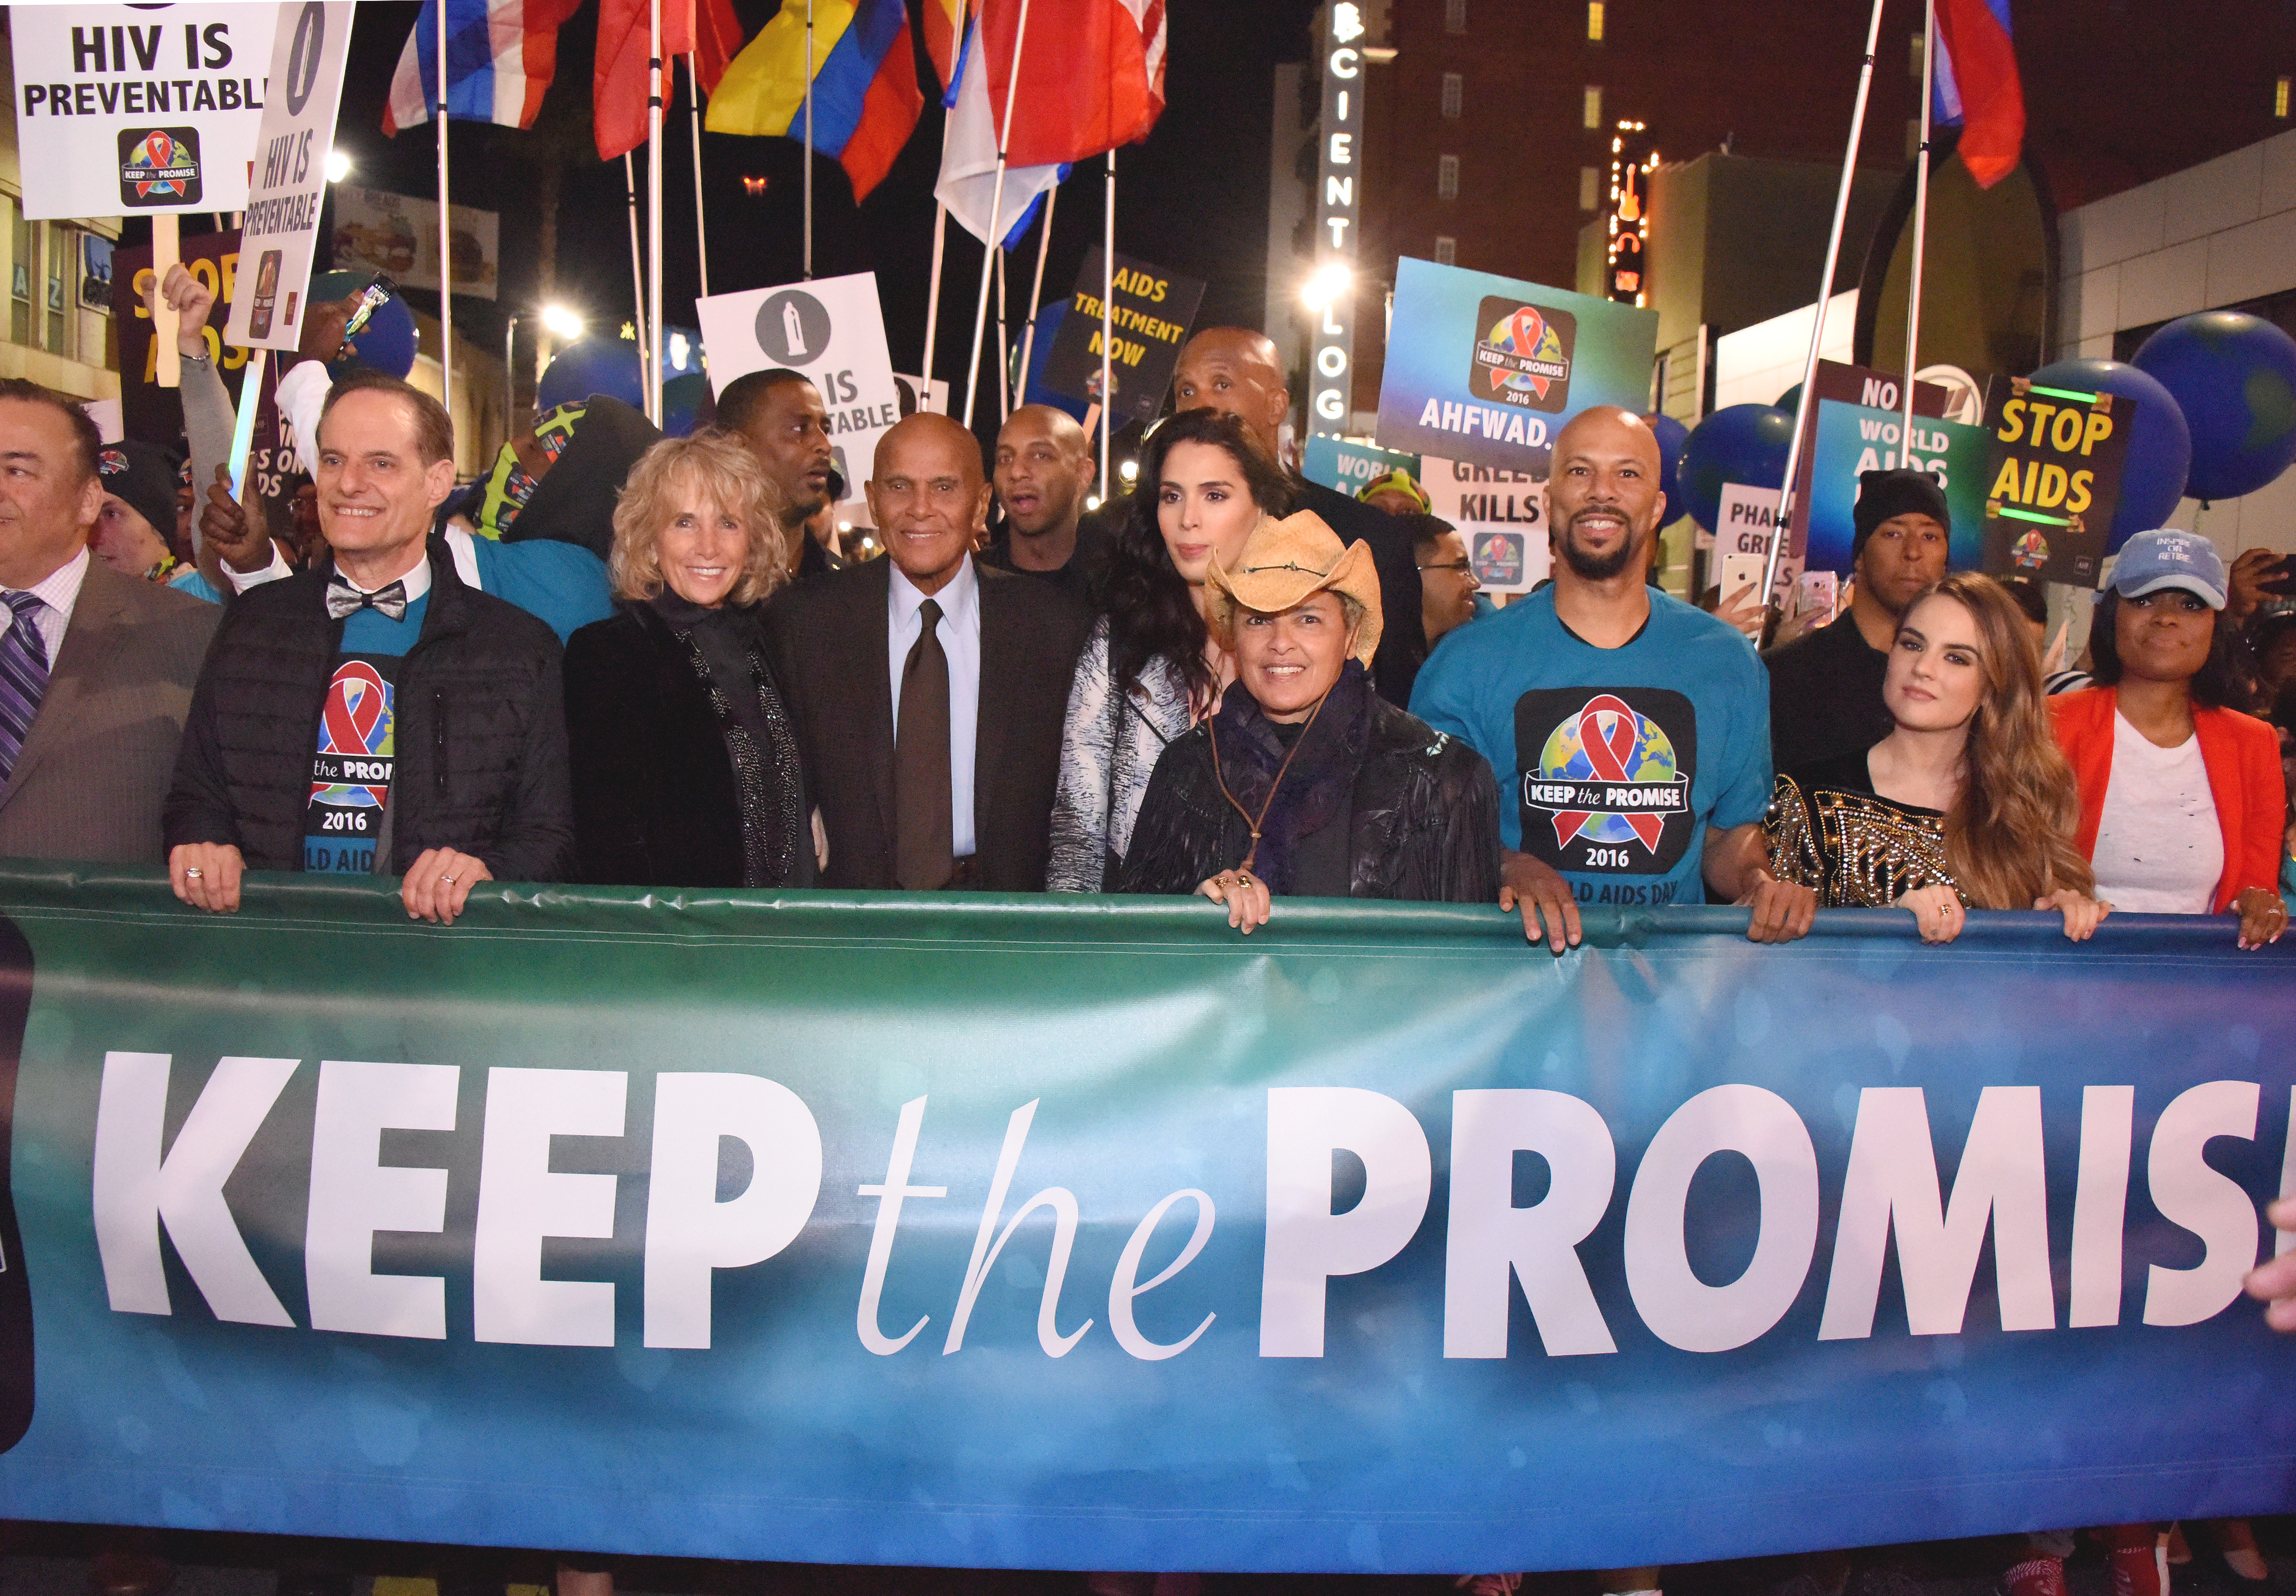 Harry Belafonte (center left, in necktie) and family joined (L to R) marchers Michael Weinstein, AHF President; Pamela Belafonte, Shari Belafonte; recording artists Common and JoJo and Karen Civil for an inspirational moment at  AIDS Healthcare Foundation's 'Keep the Promise' March in Hollywood, CA on November 30, 2016. More than a thousand people marched down historic Hollywood Boulevard on the eve of World AIDS Day to raise awareness about HIV/AIDS and to persuade key decision makers in the U.S. and around the globe to commit more resources and funding to HIV/AIDS prevention, care and treatment. A free Keep the Promise concert at the Dolby Theatre headlined by Patti LaBelle and Common and honoring Belafonte for his lifetime of humanitarian and charitable work followed the march. (Araya Diaz/Getty Images for AIDS Healthcare Foundation)